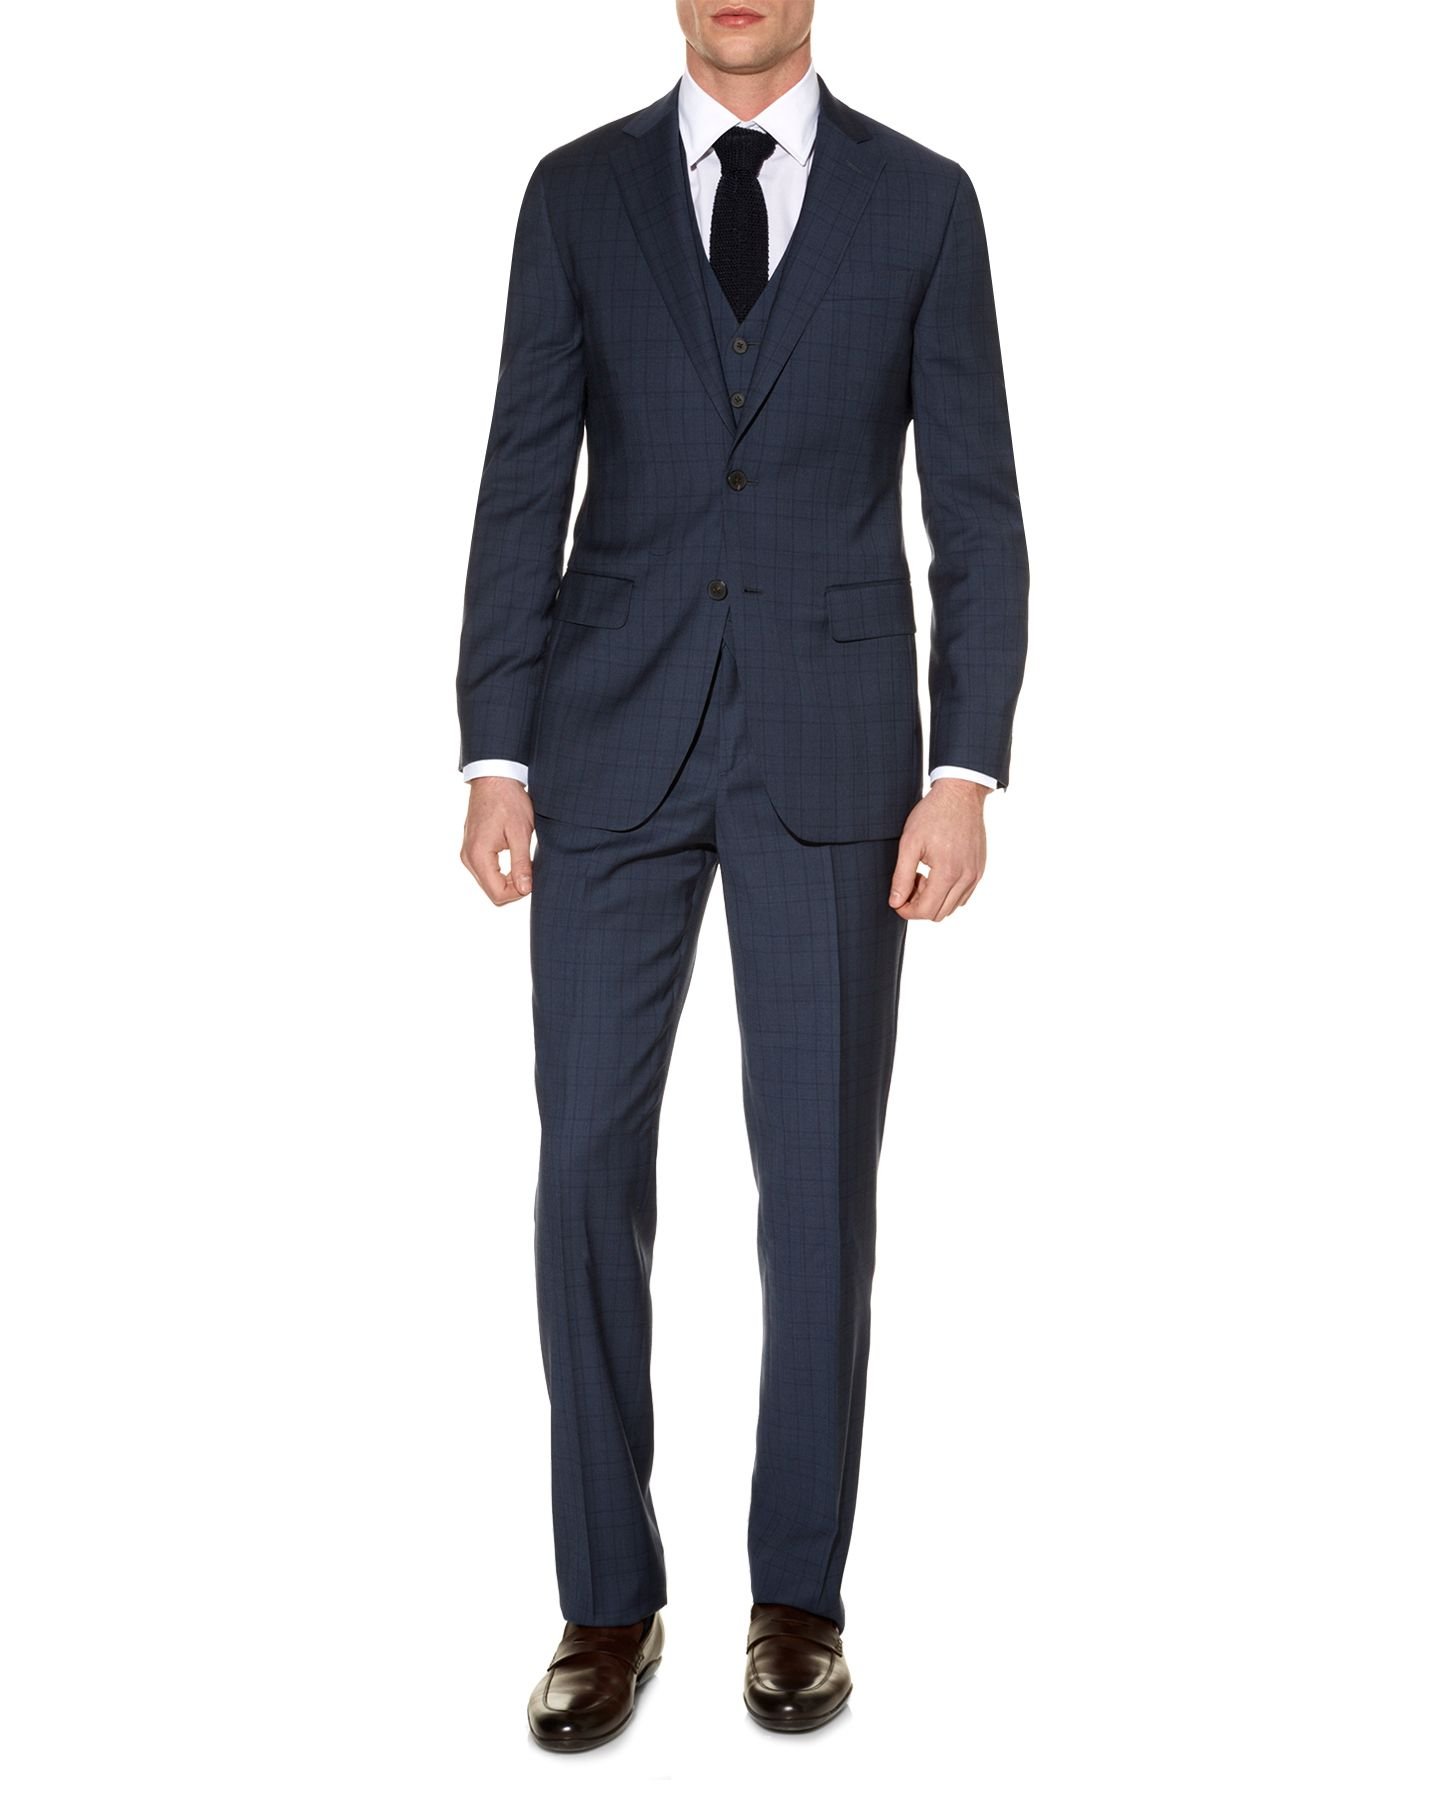 Savage chesterton three piece suit